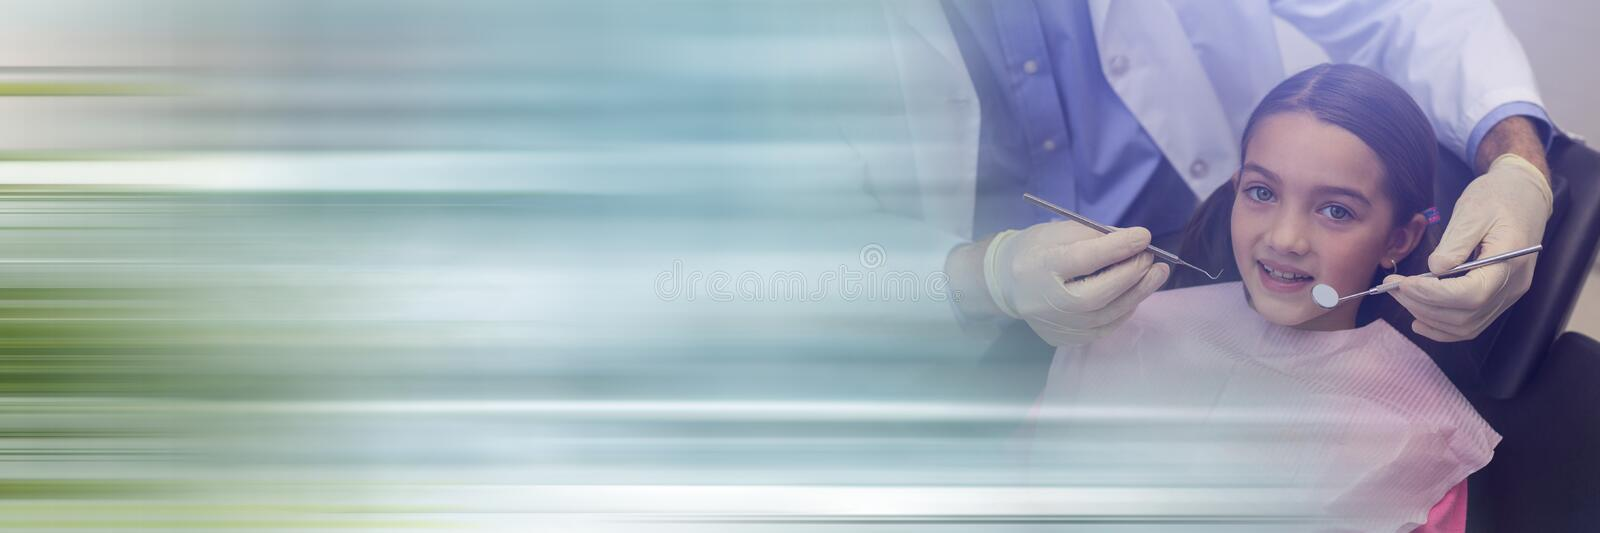 Girl about to get dentist check up and blurry blue transition royalty free stock photos